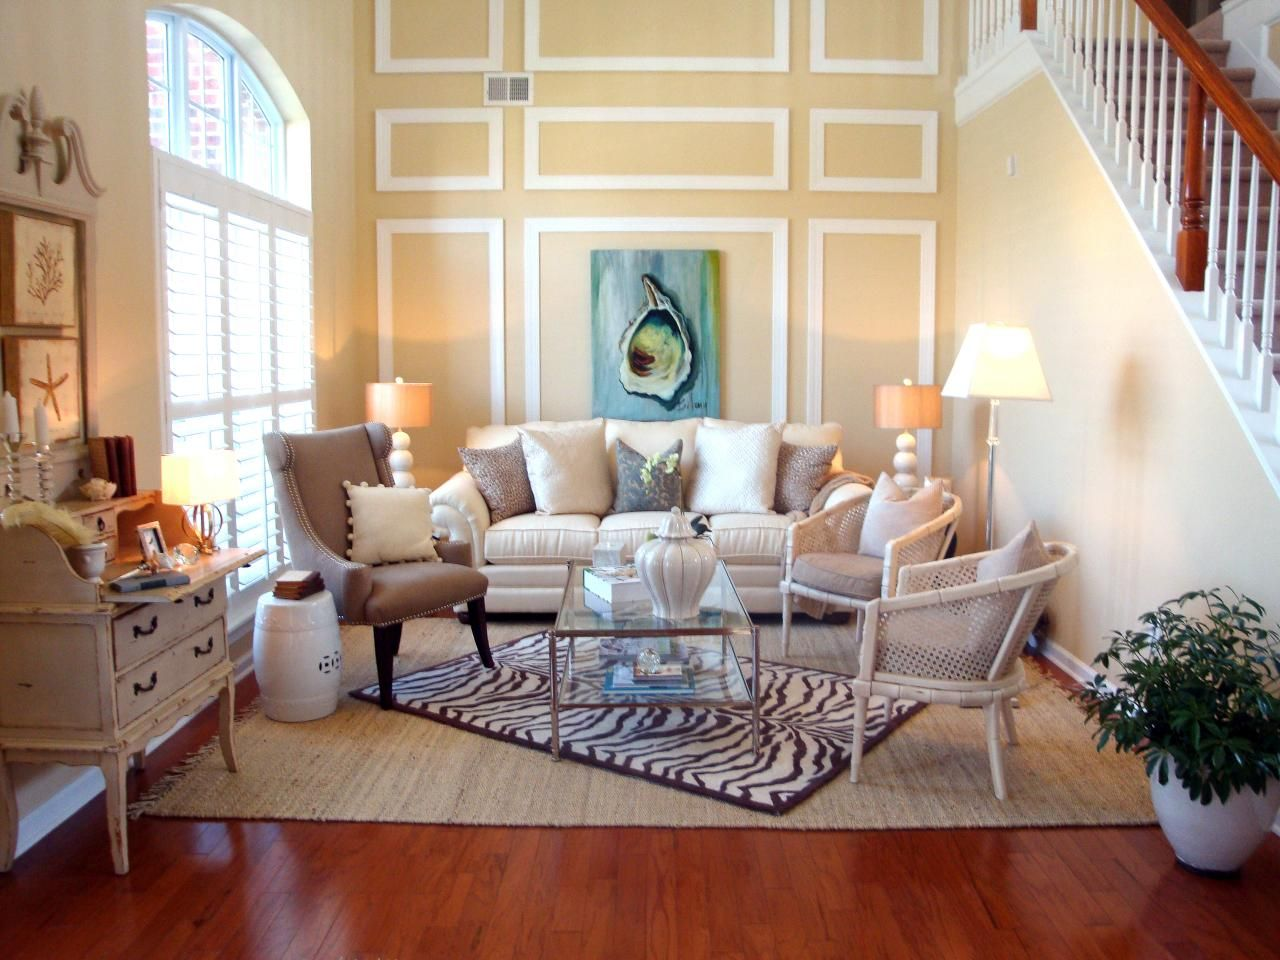 Seaside Chic Interior Design Styles and